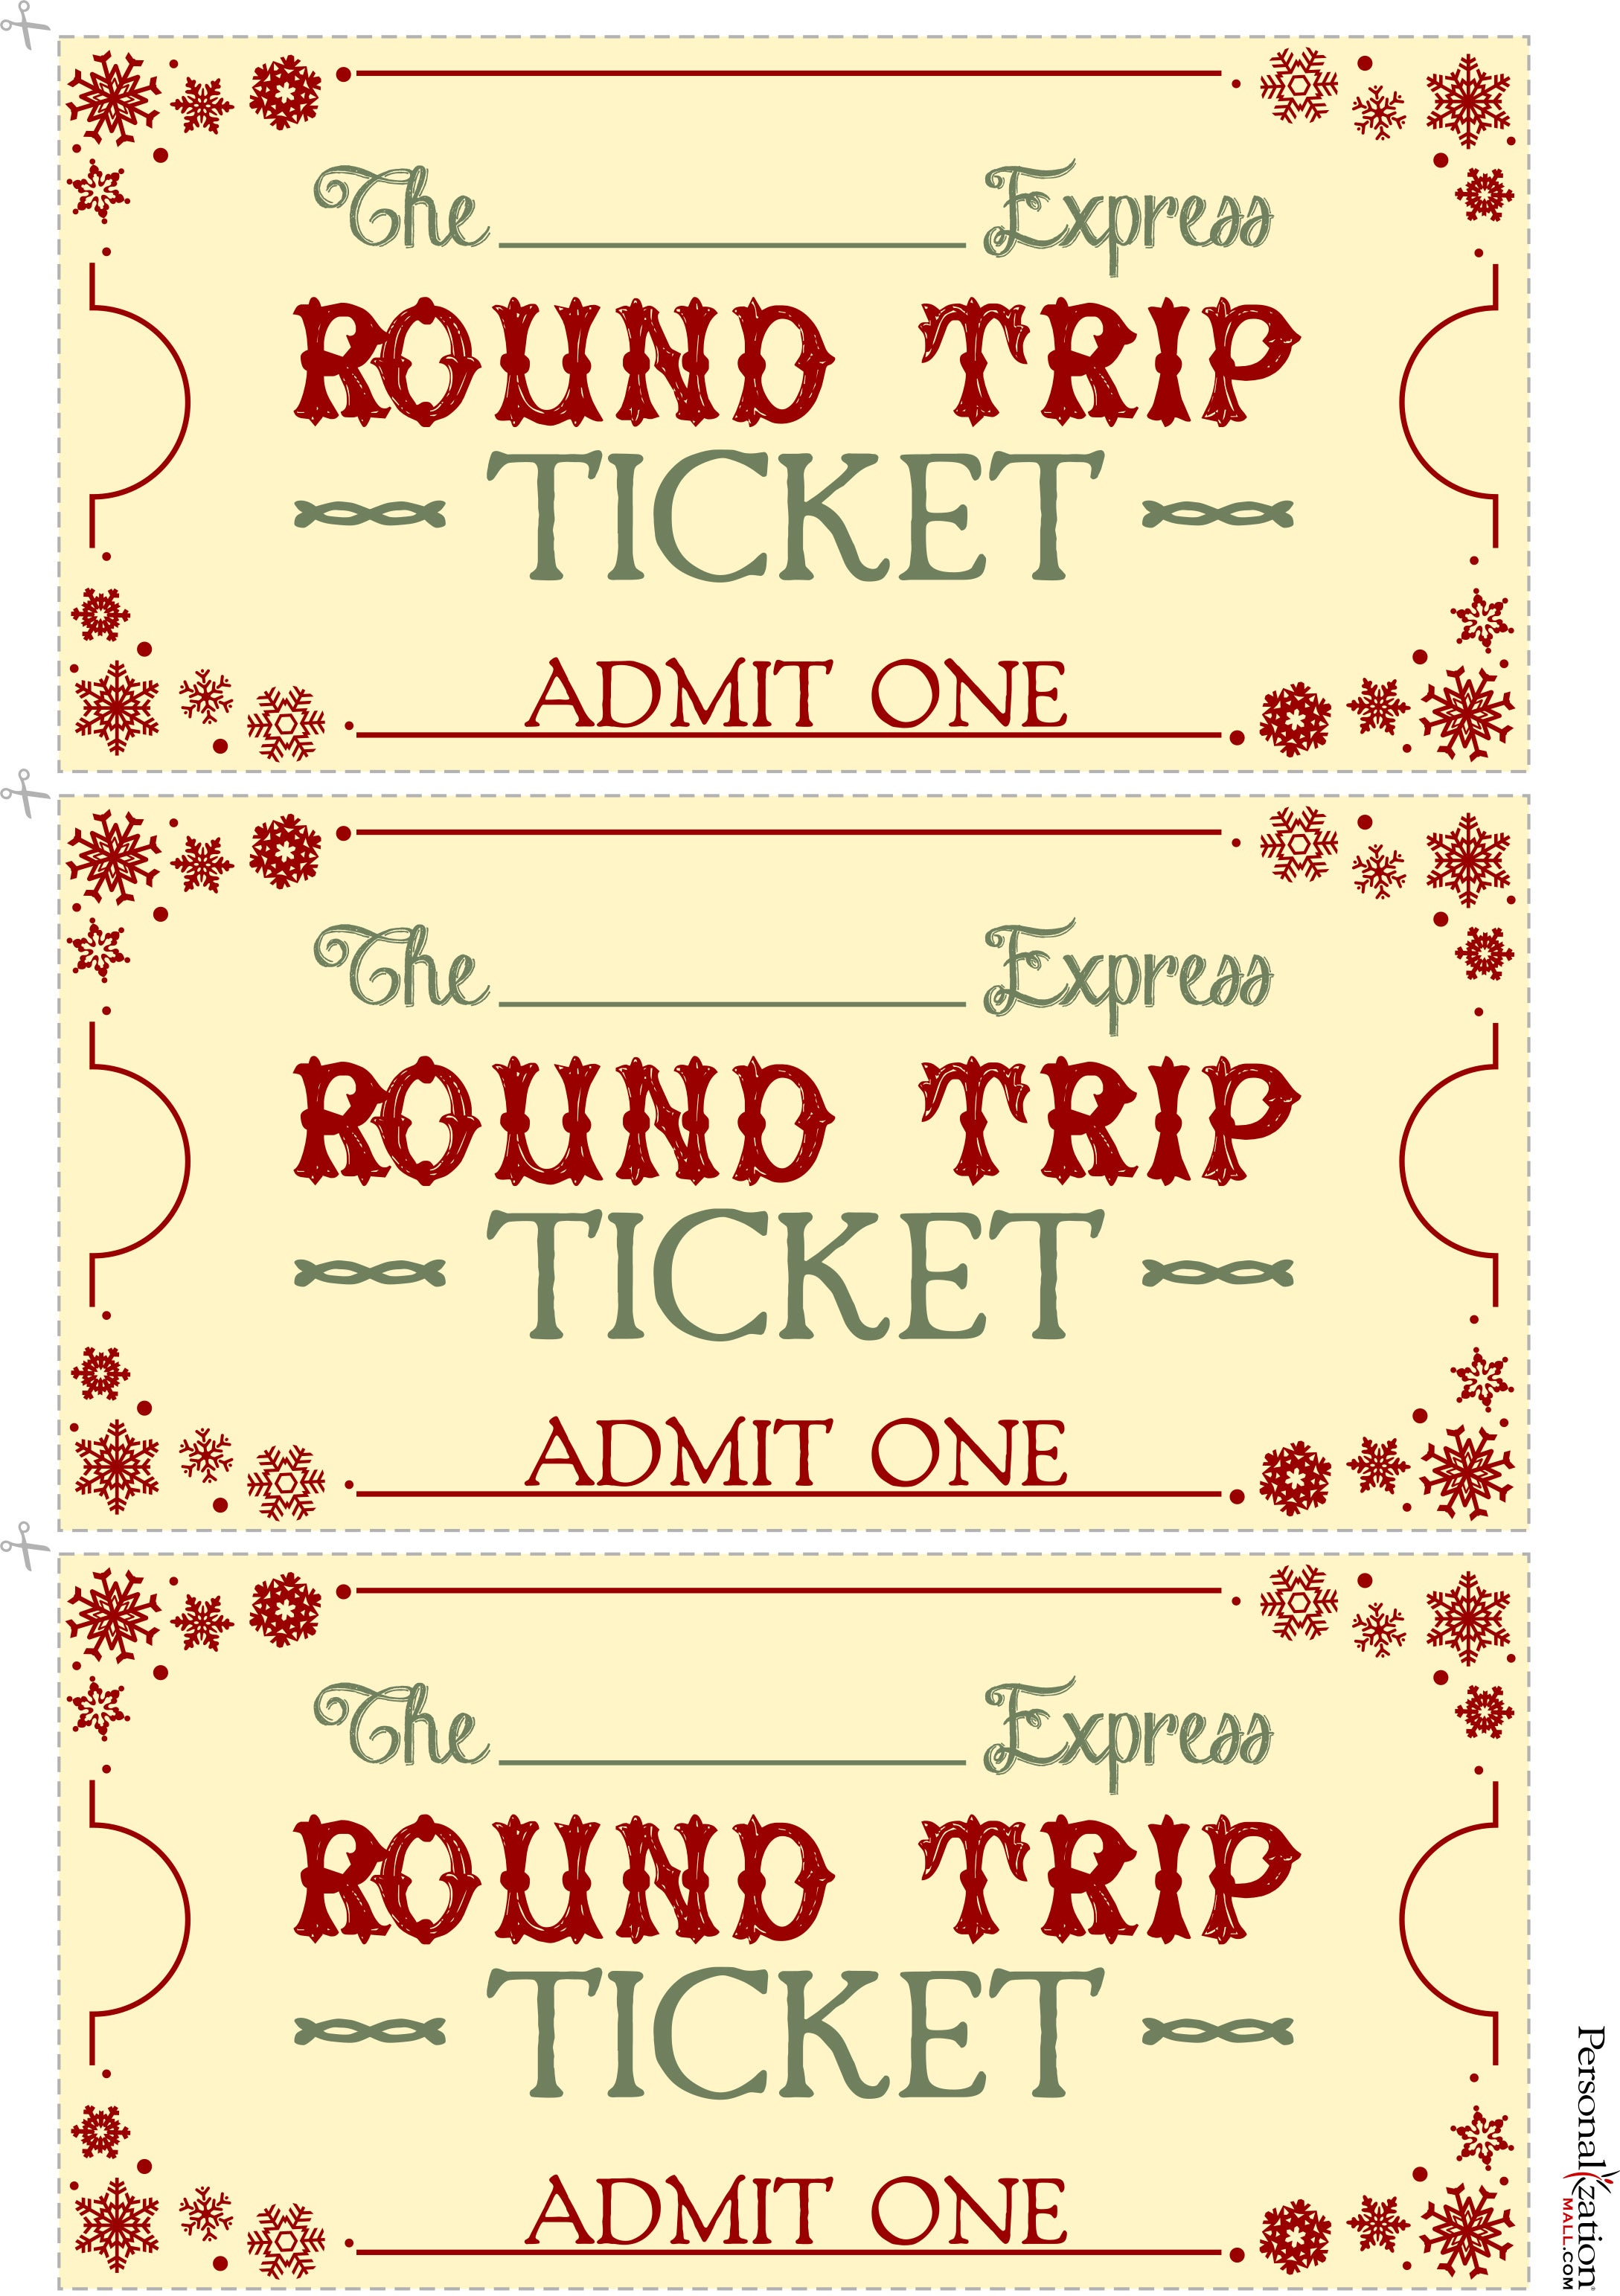 Polar Express Ticket Printable Exclusive express tickets